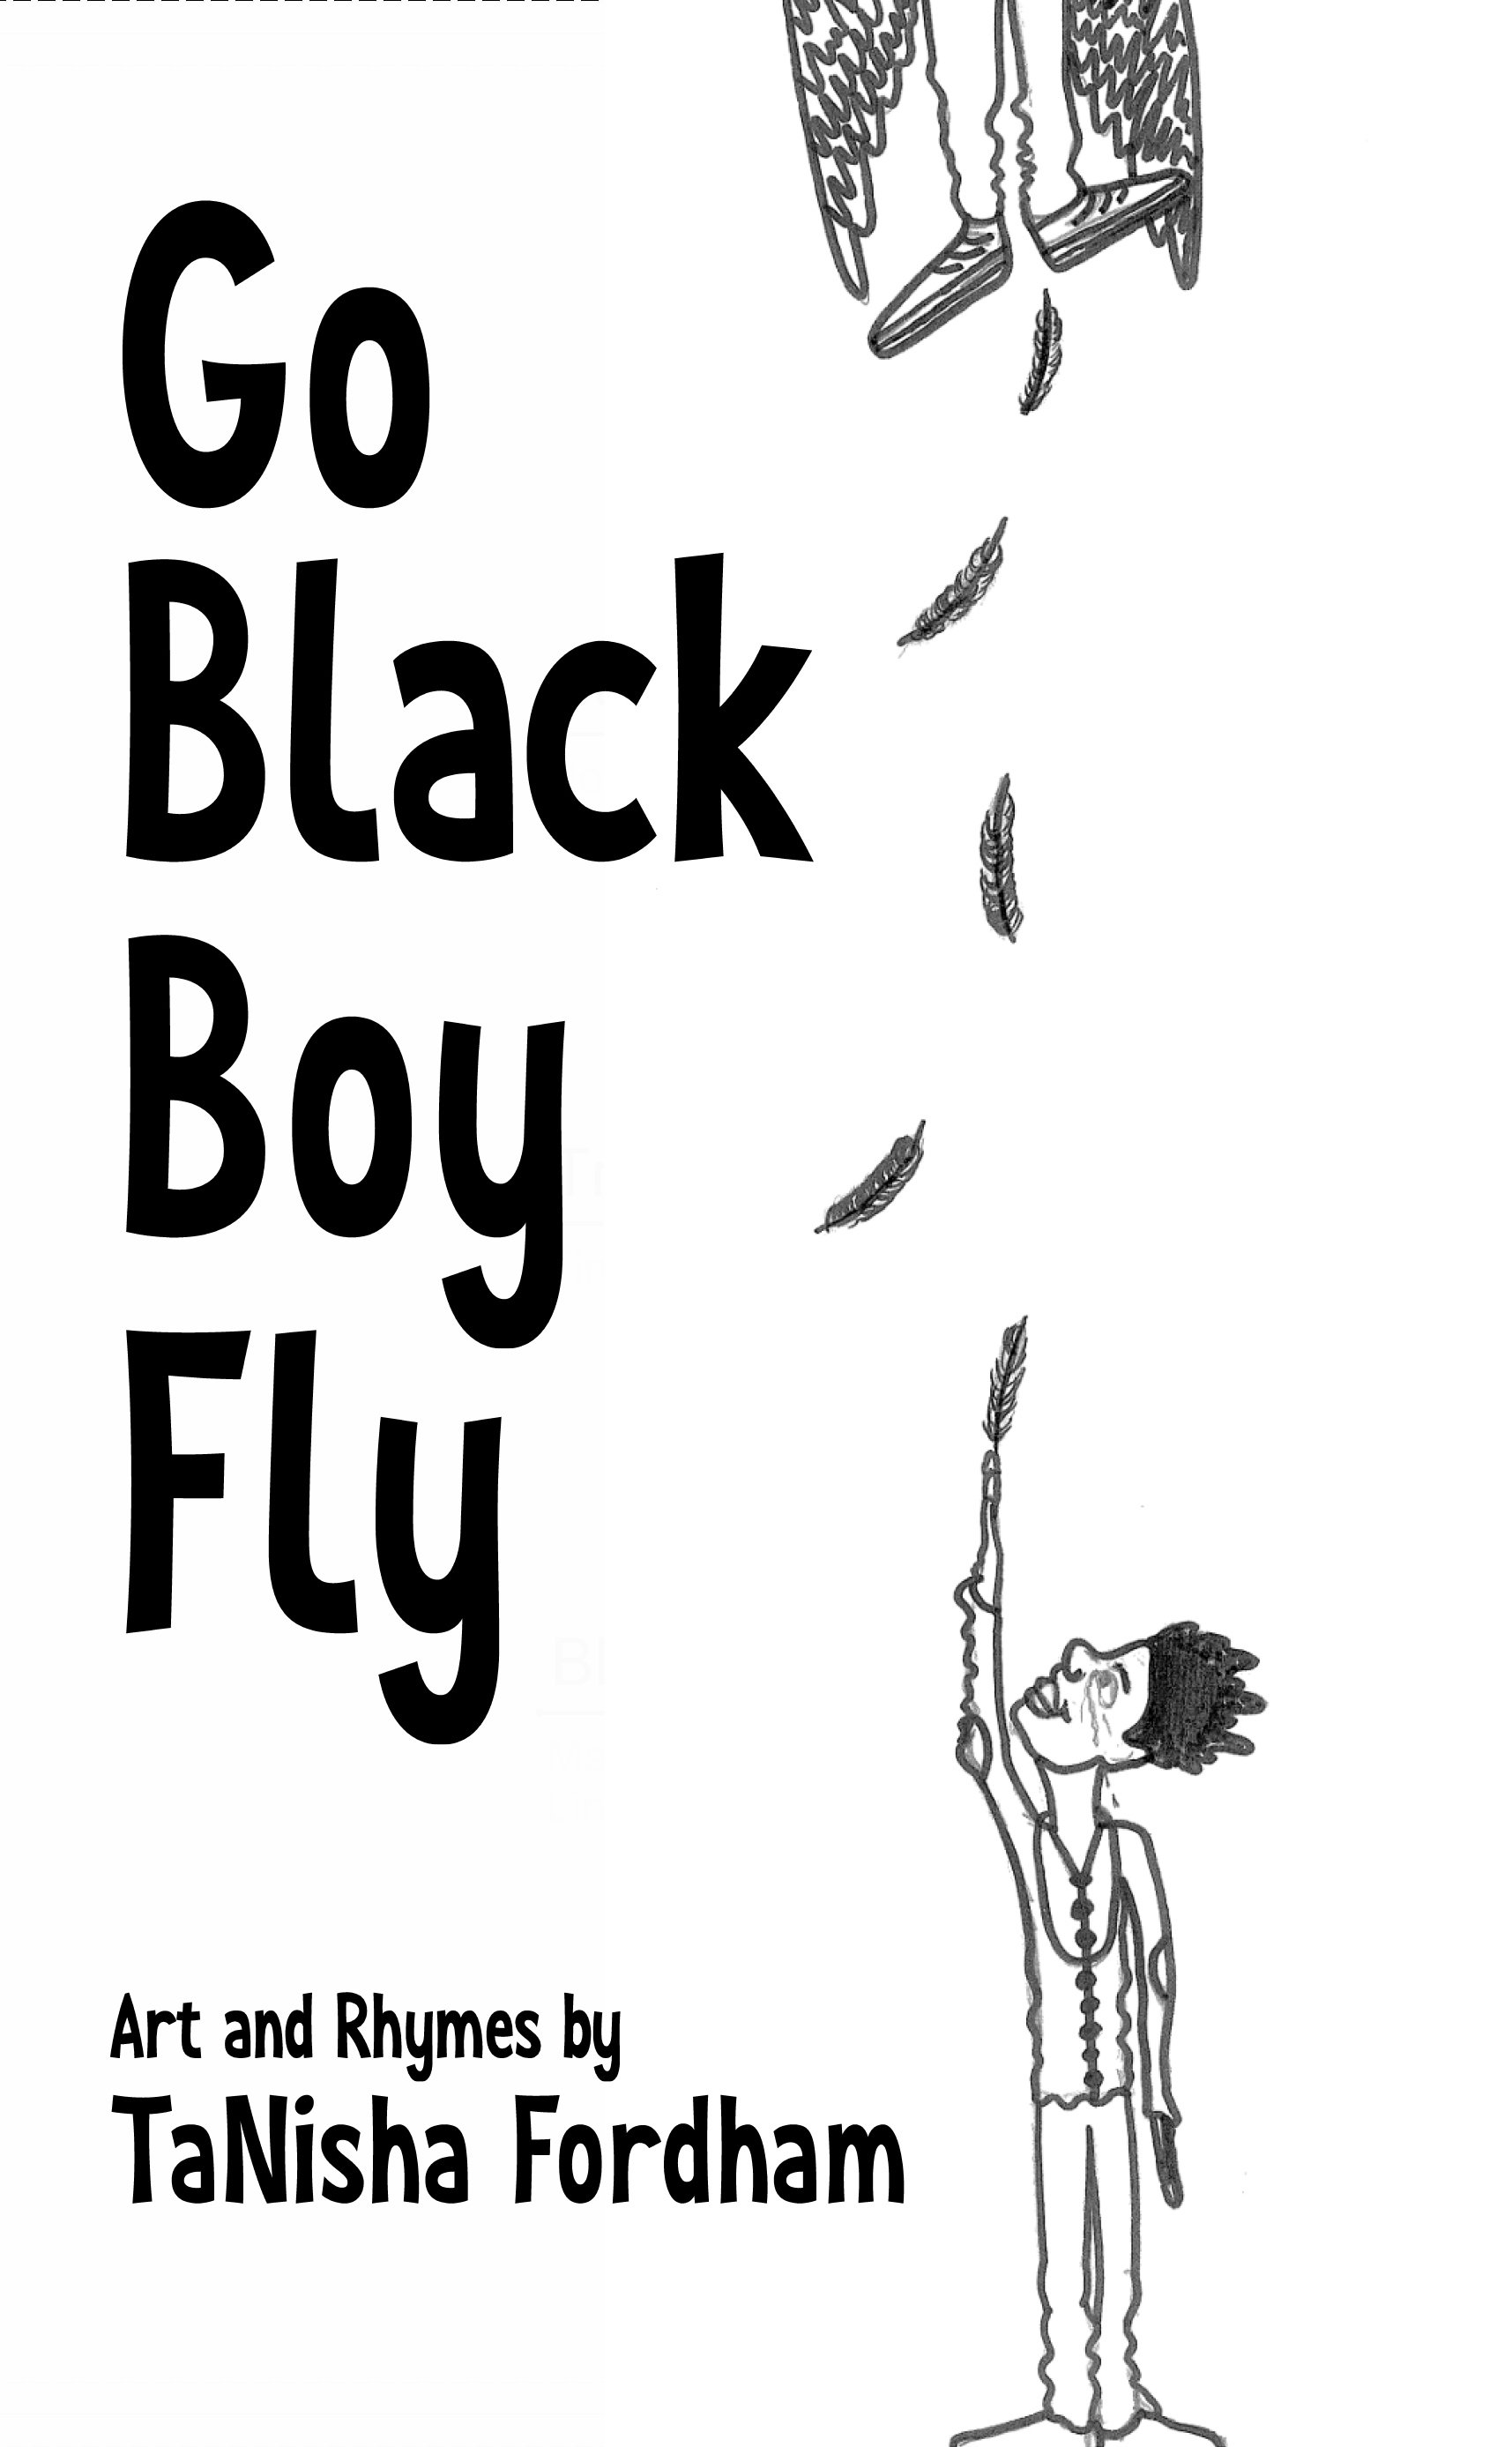 Go Black Boy Fly  by TaNisha Fordham 978-1947289833